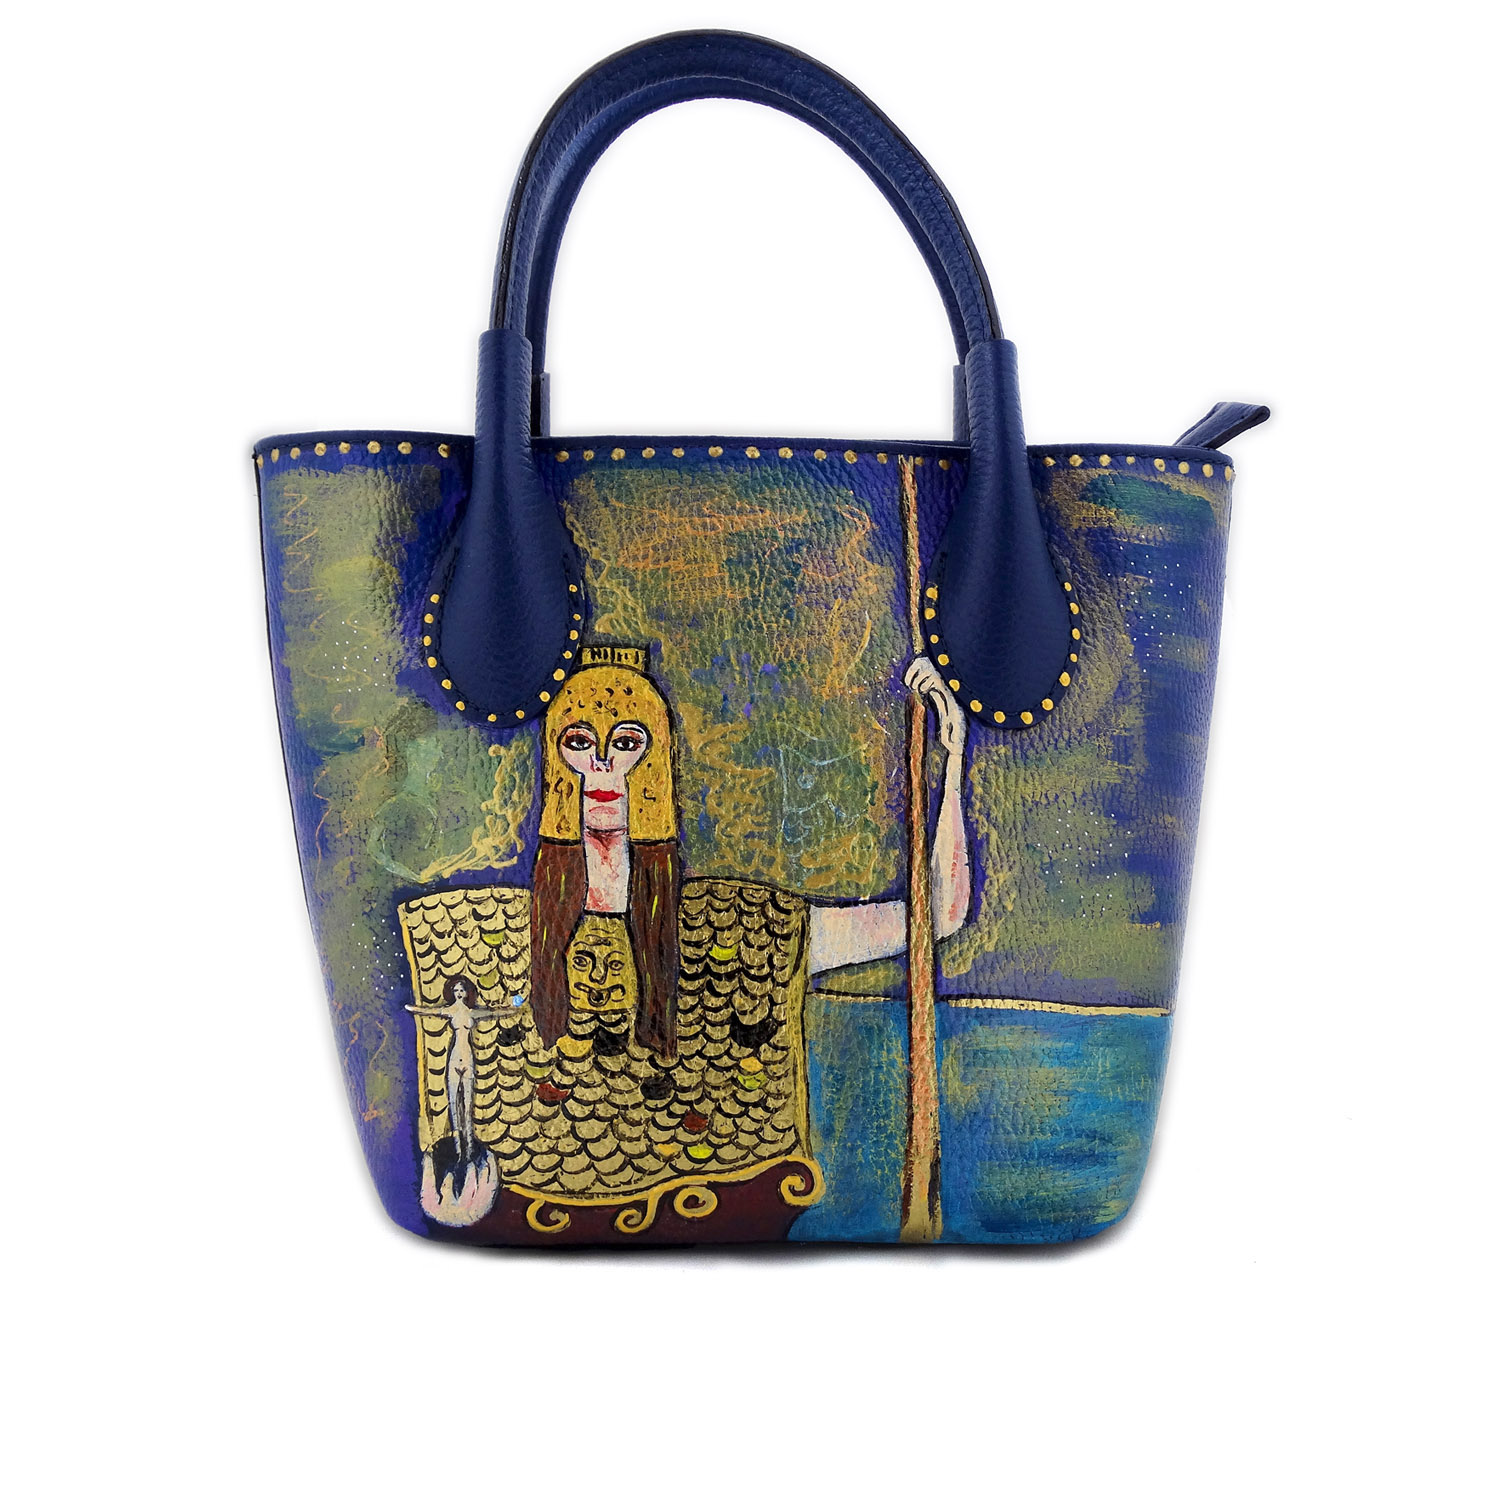 Hand painted bag - Pallas Athena by Klimt